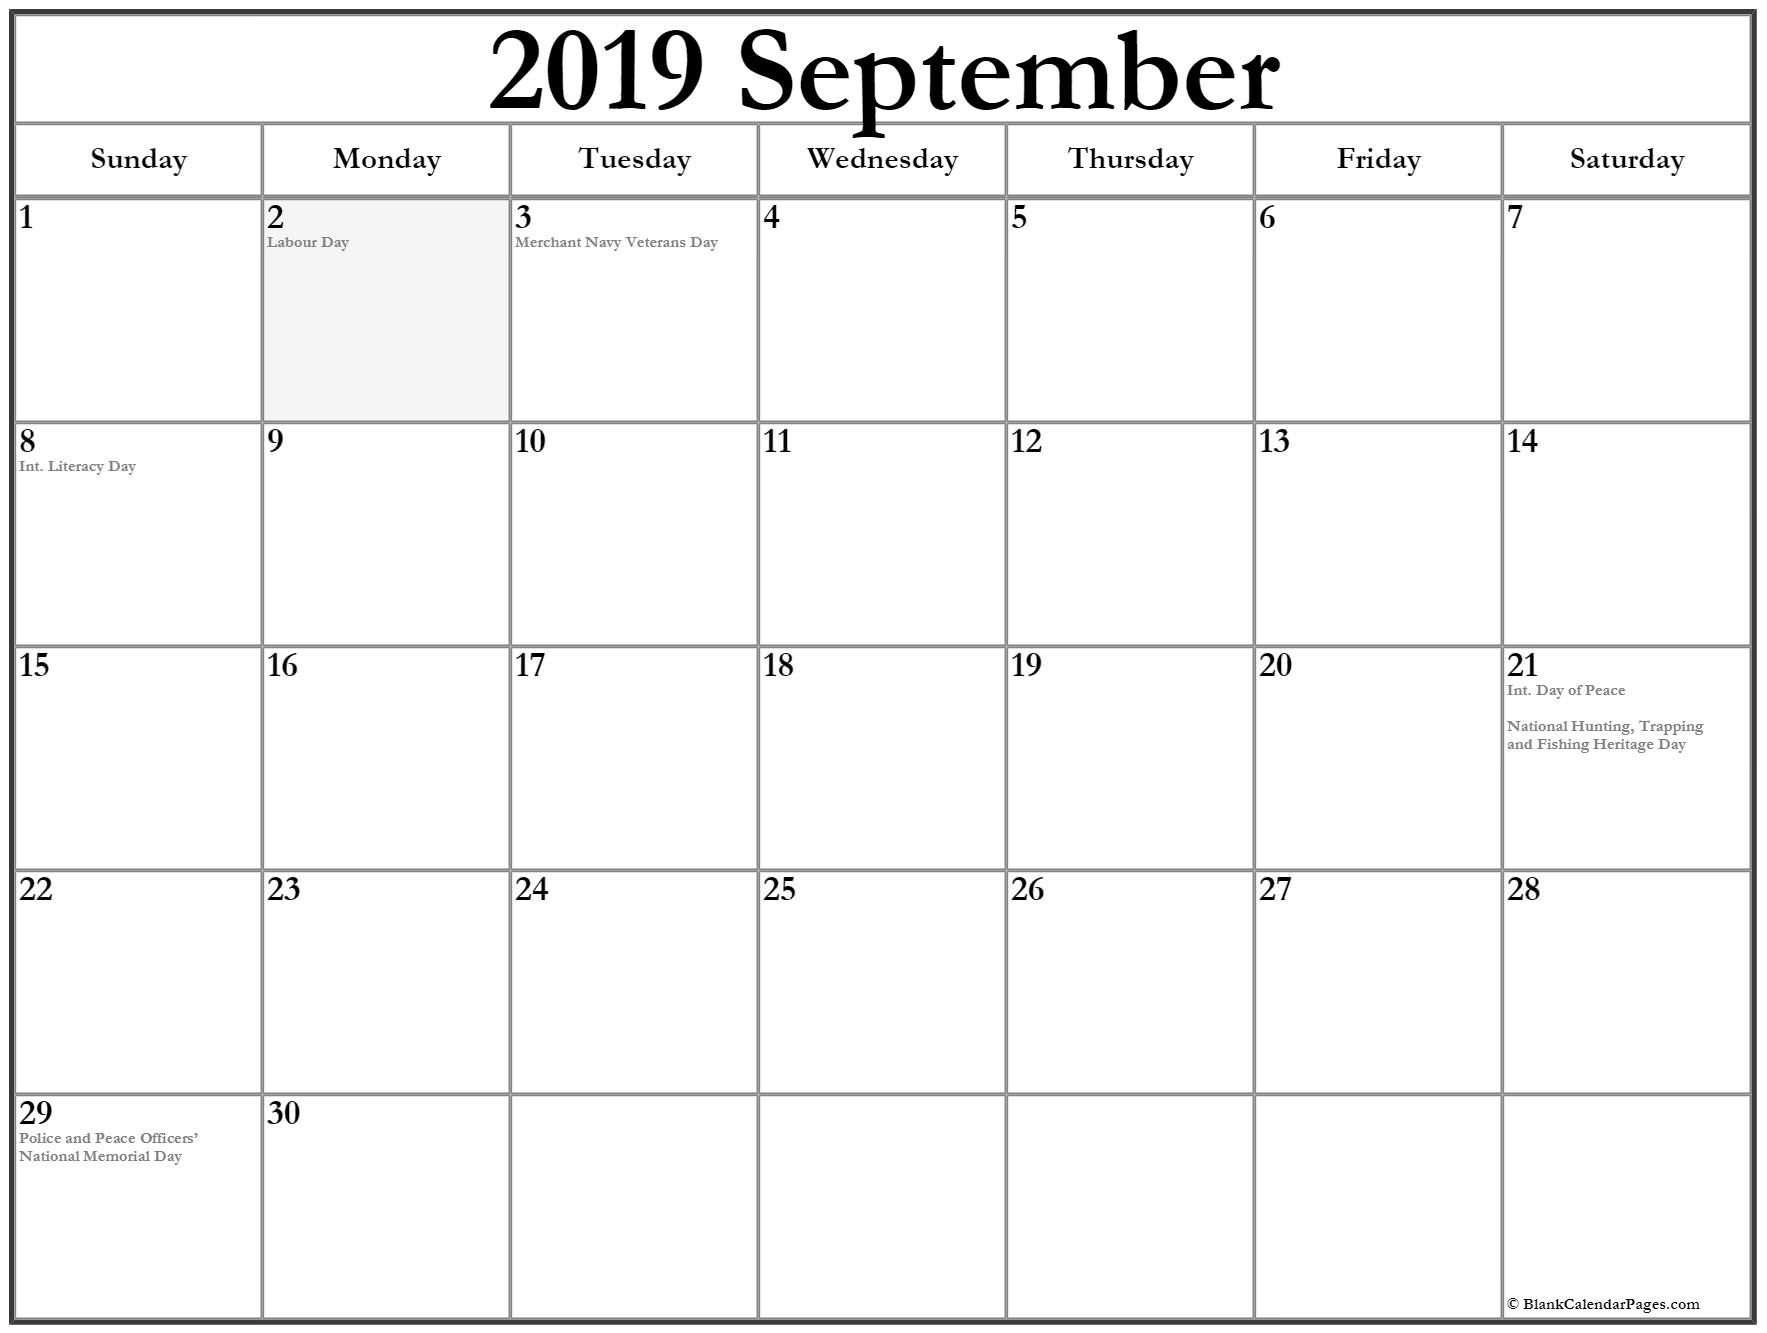 September 2019 Federal Holidays Calendar